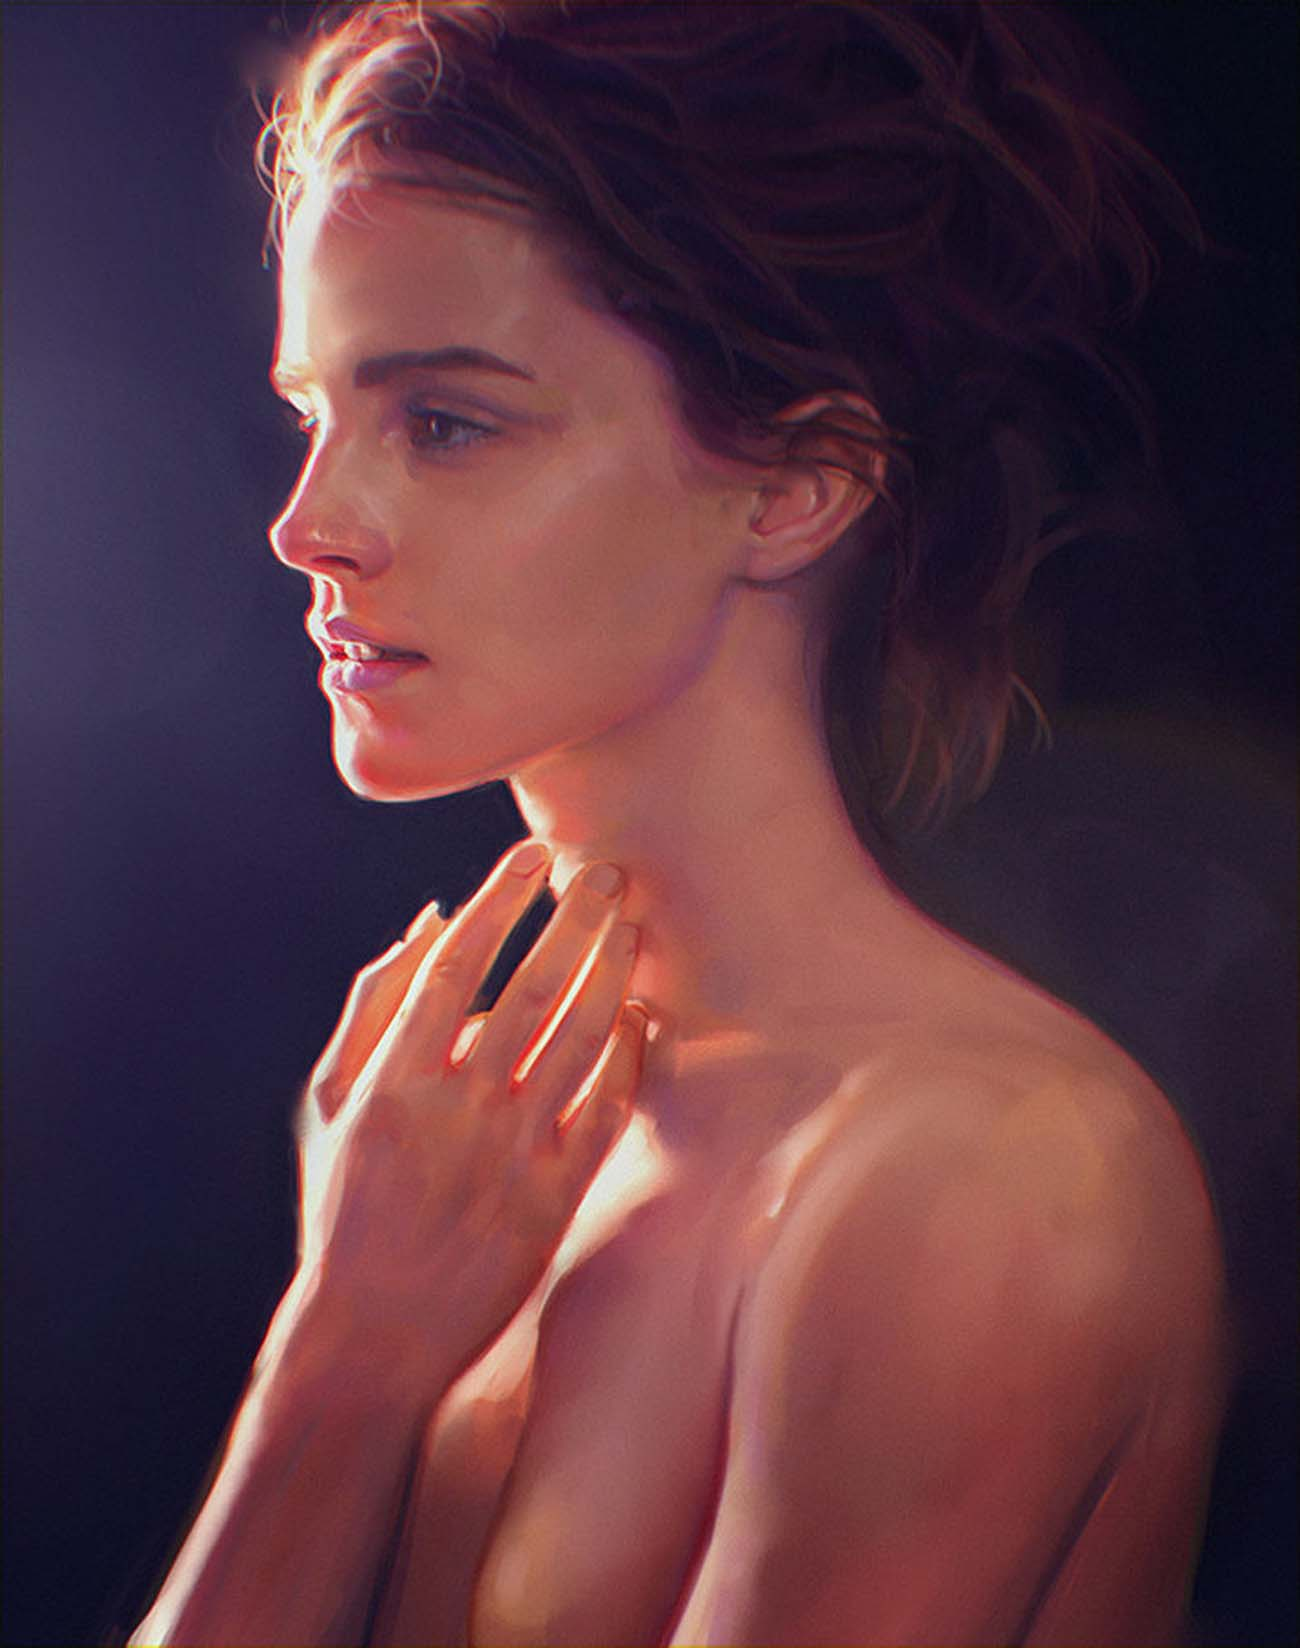 Irakli Nadar | Digital Painting & Art Inspiration on Paintable.cc